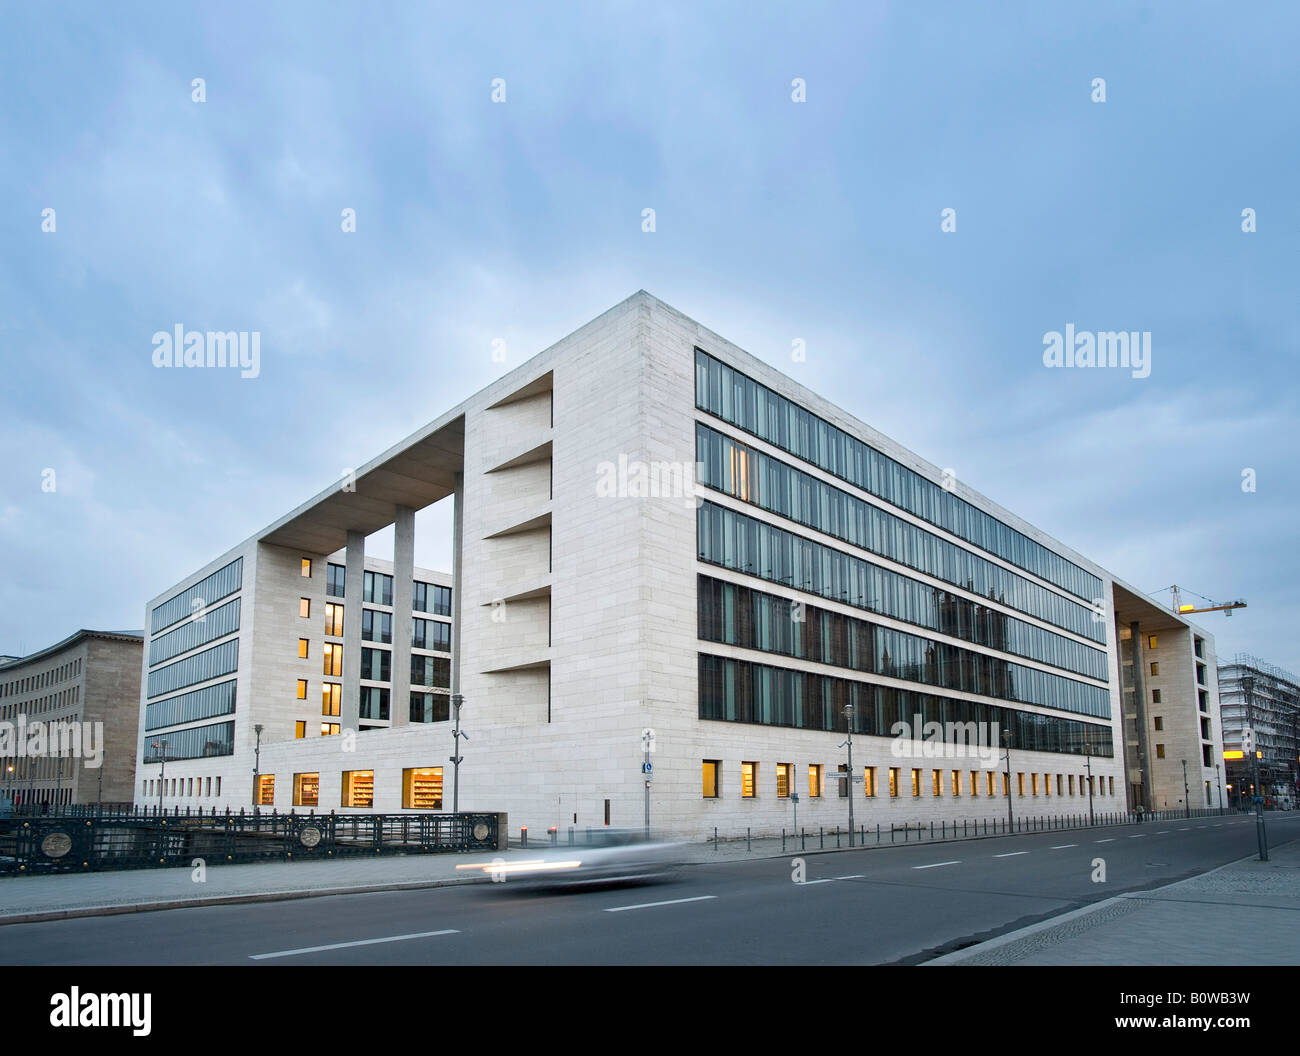 Auswaertiges Amt, German Foreign Office, Ministry of Foreign Affairs, Berlin, Germany - Stock Image